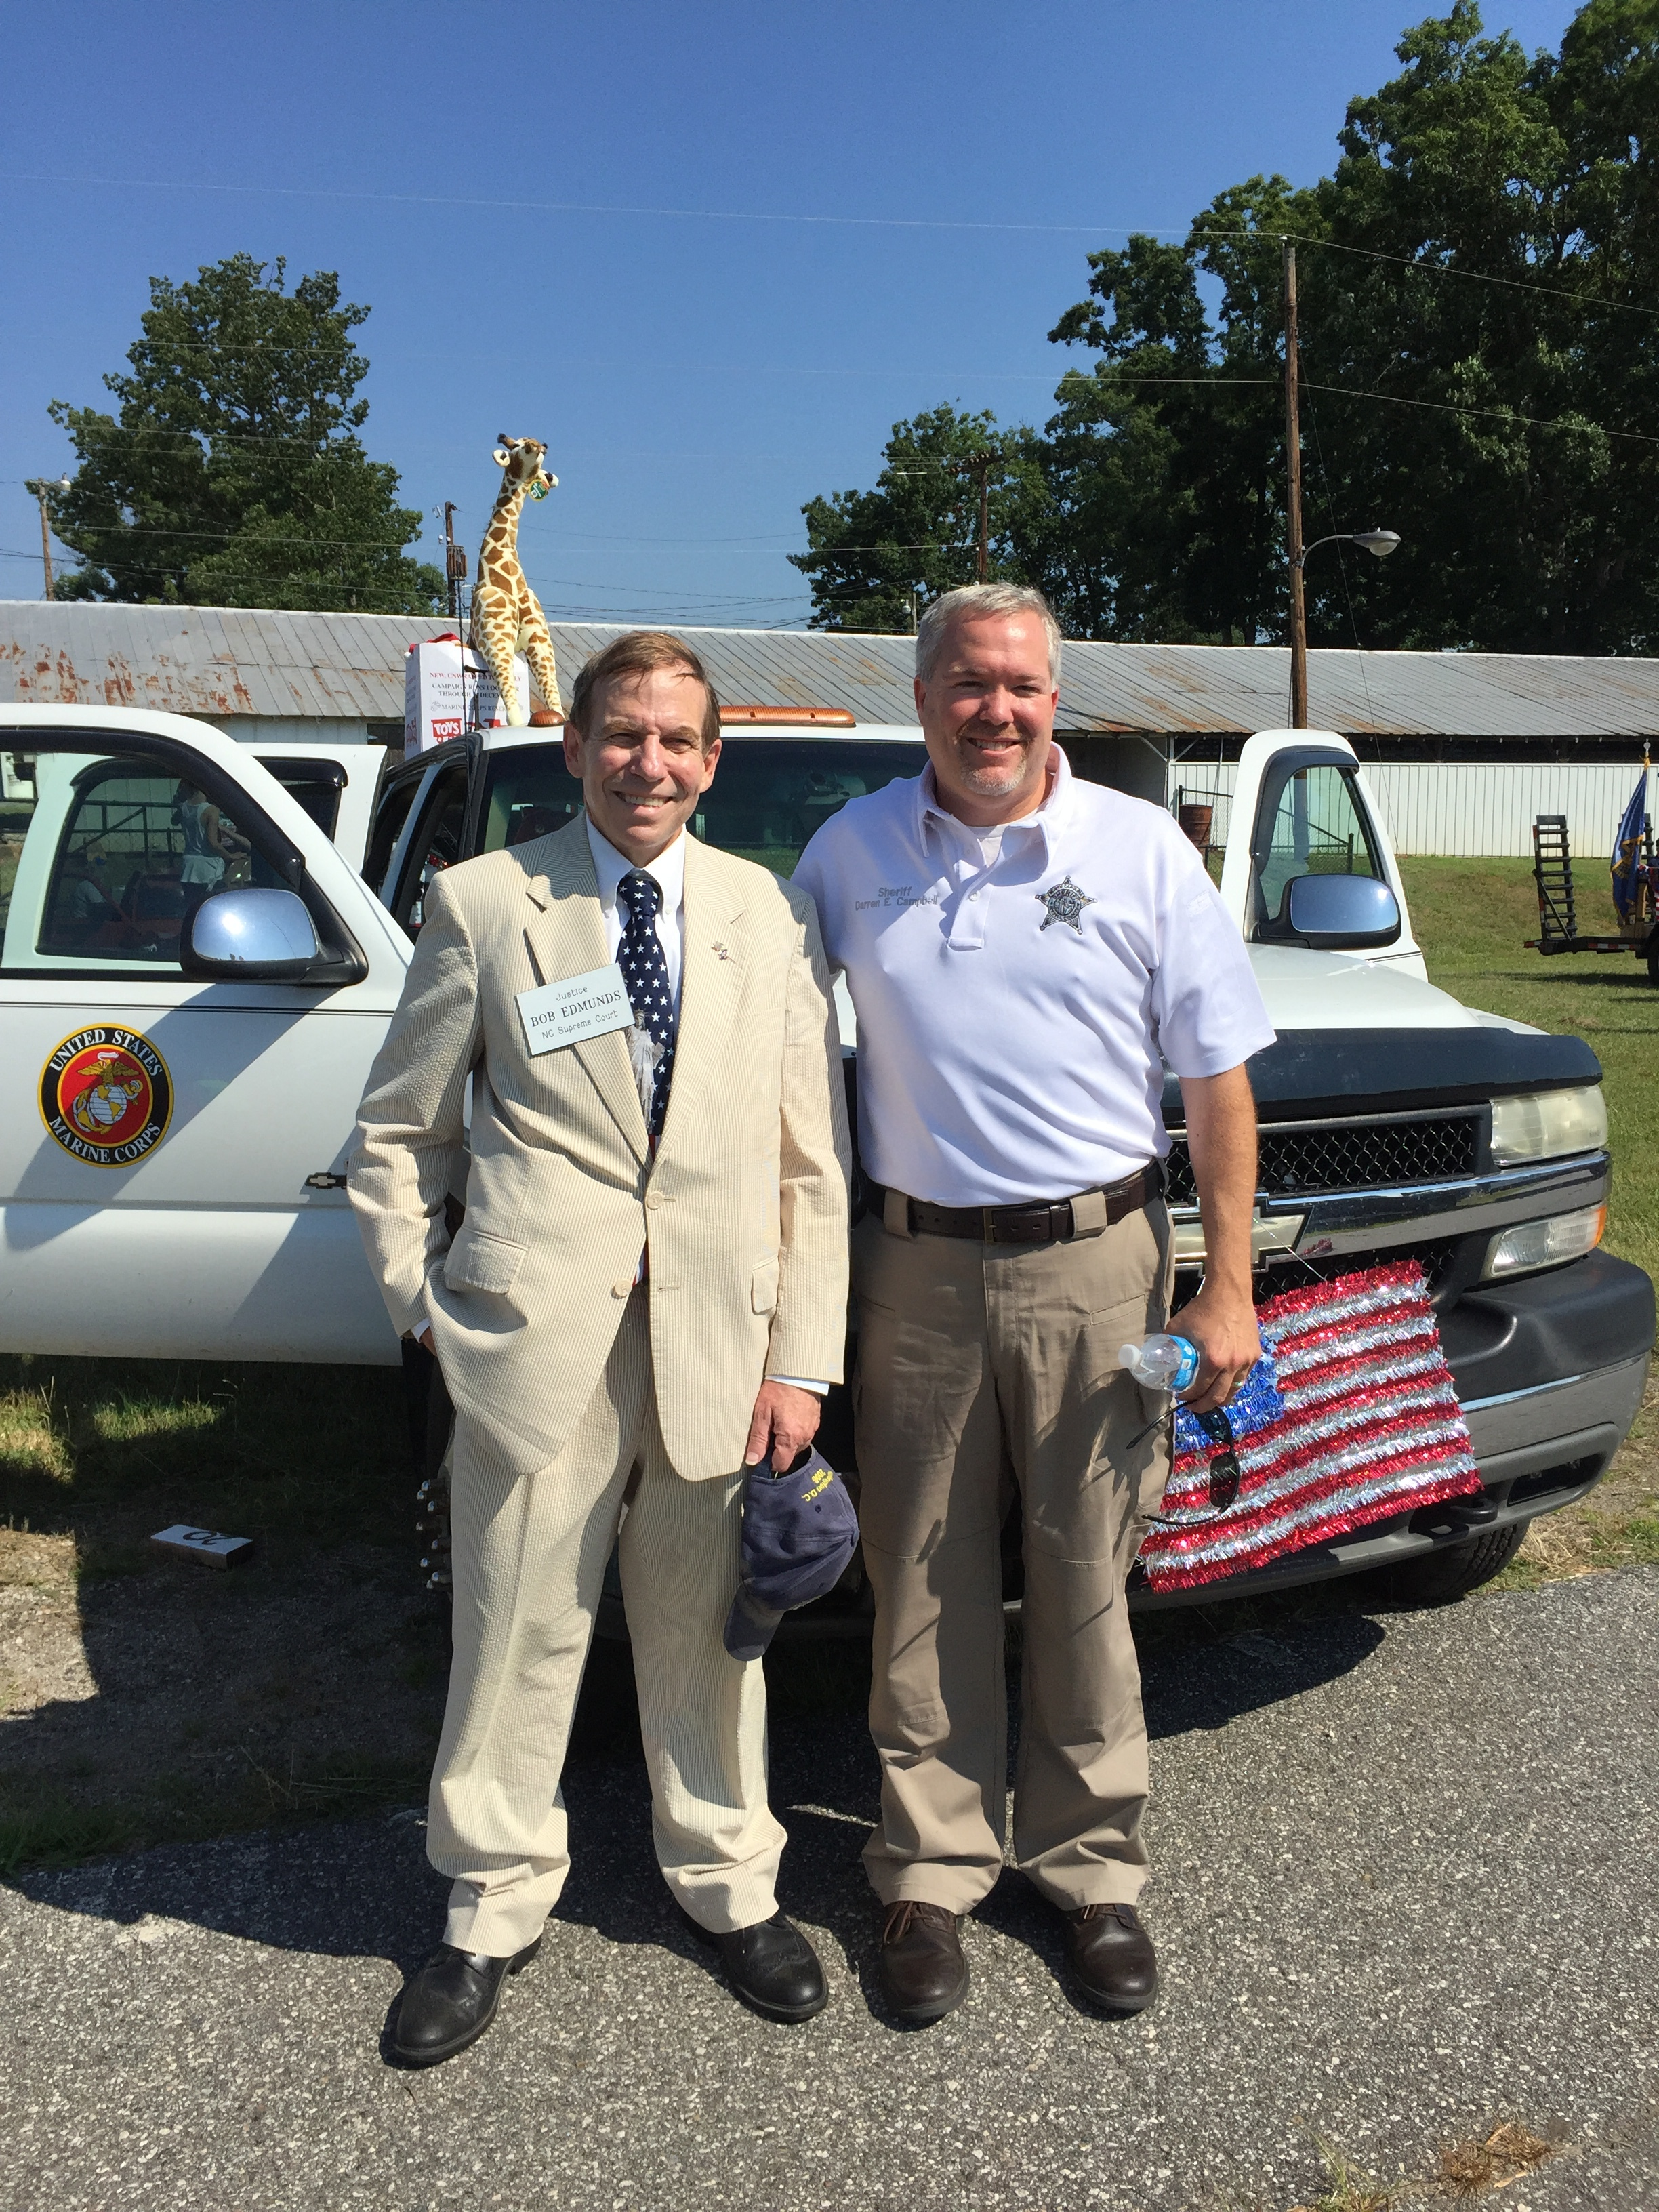 With Iredell County Sheriff Darren Campbell at Troutman parade, July 2, 2016.